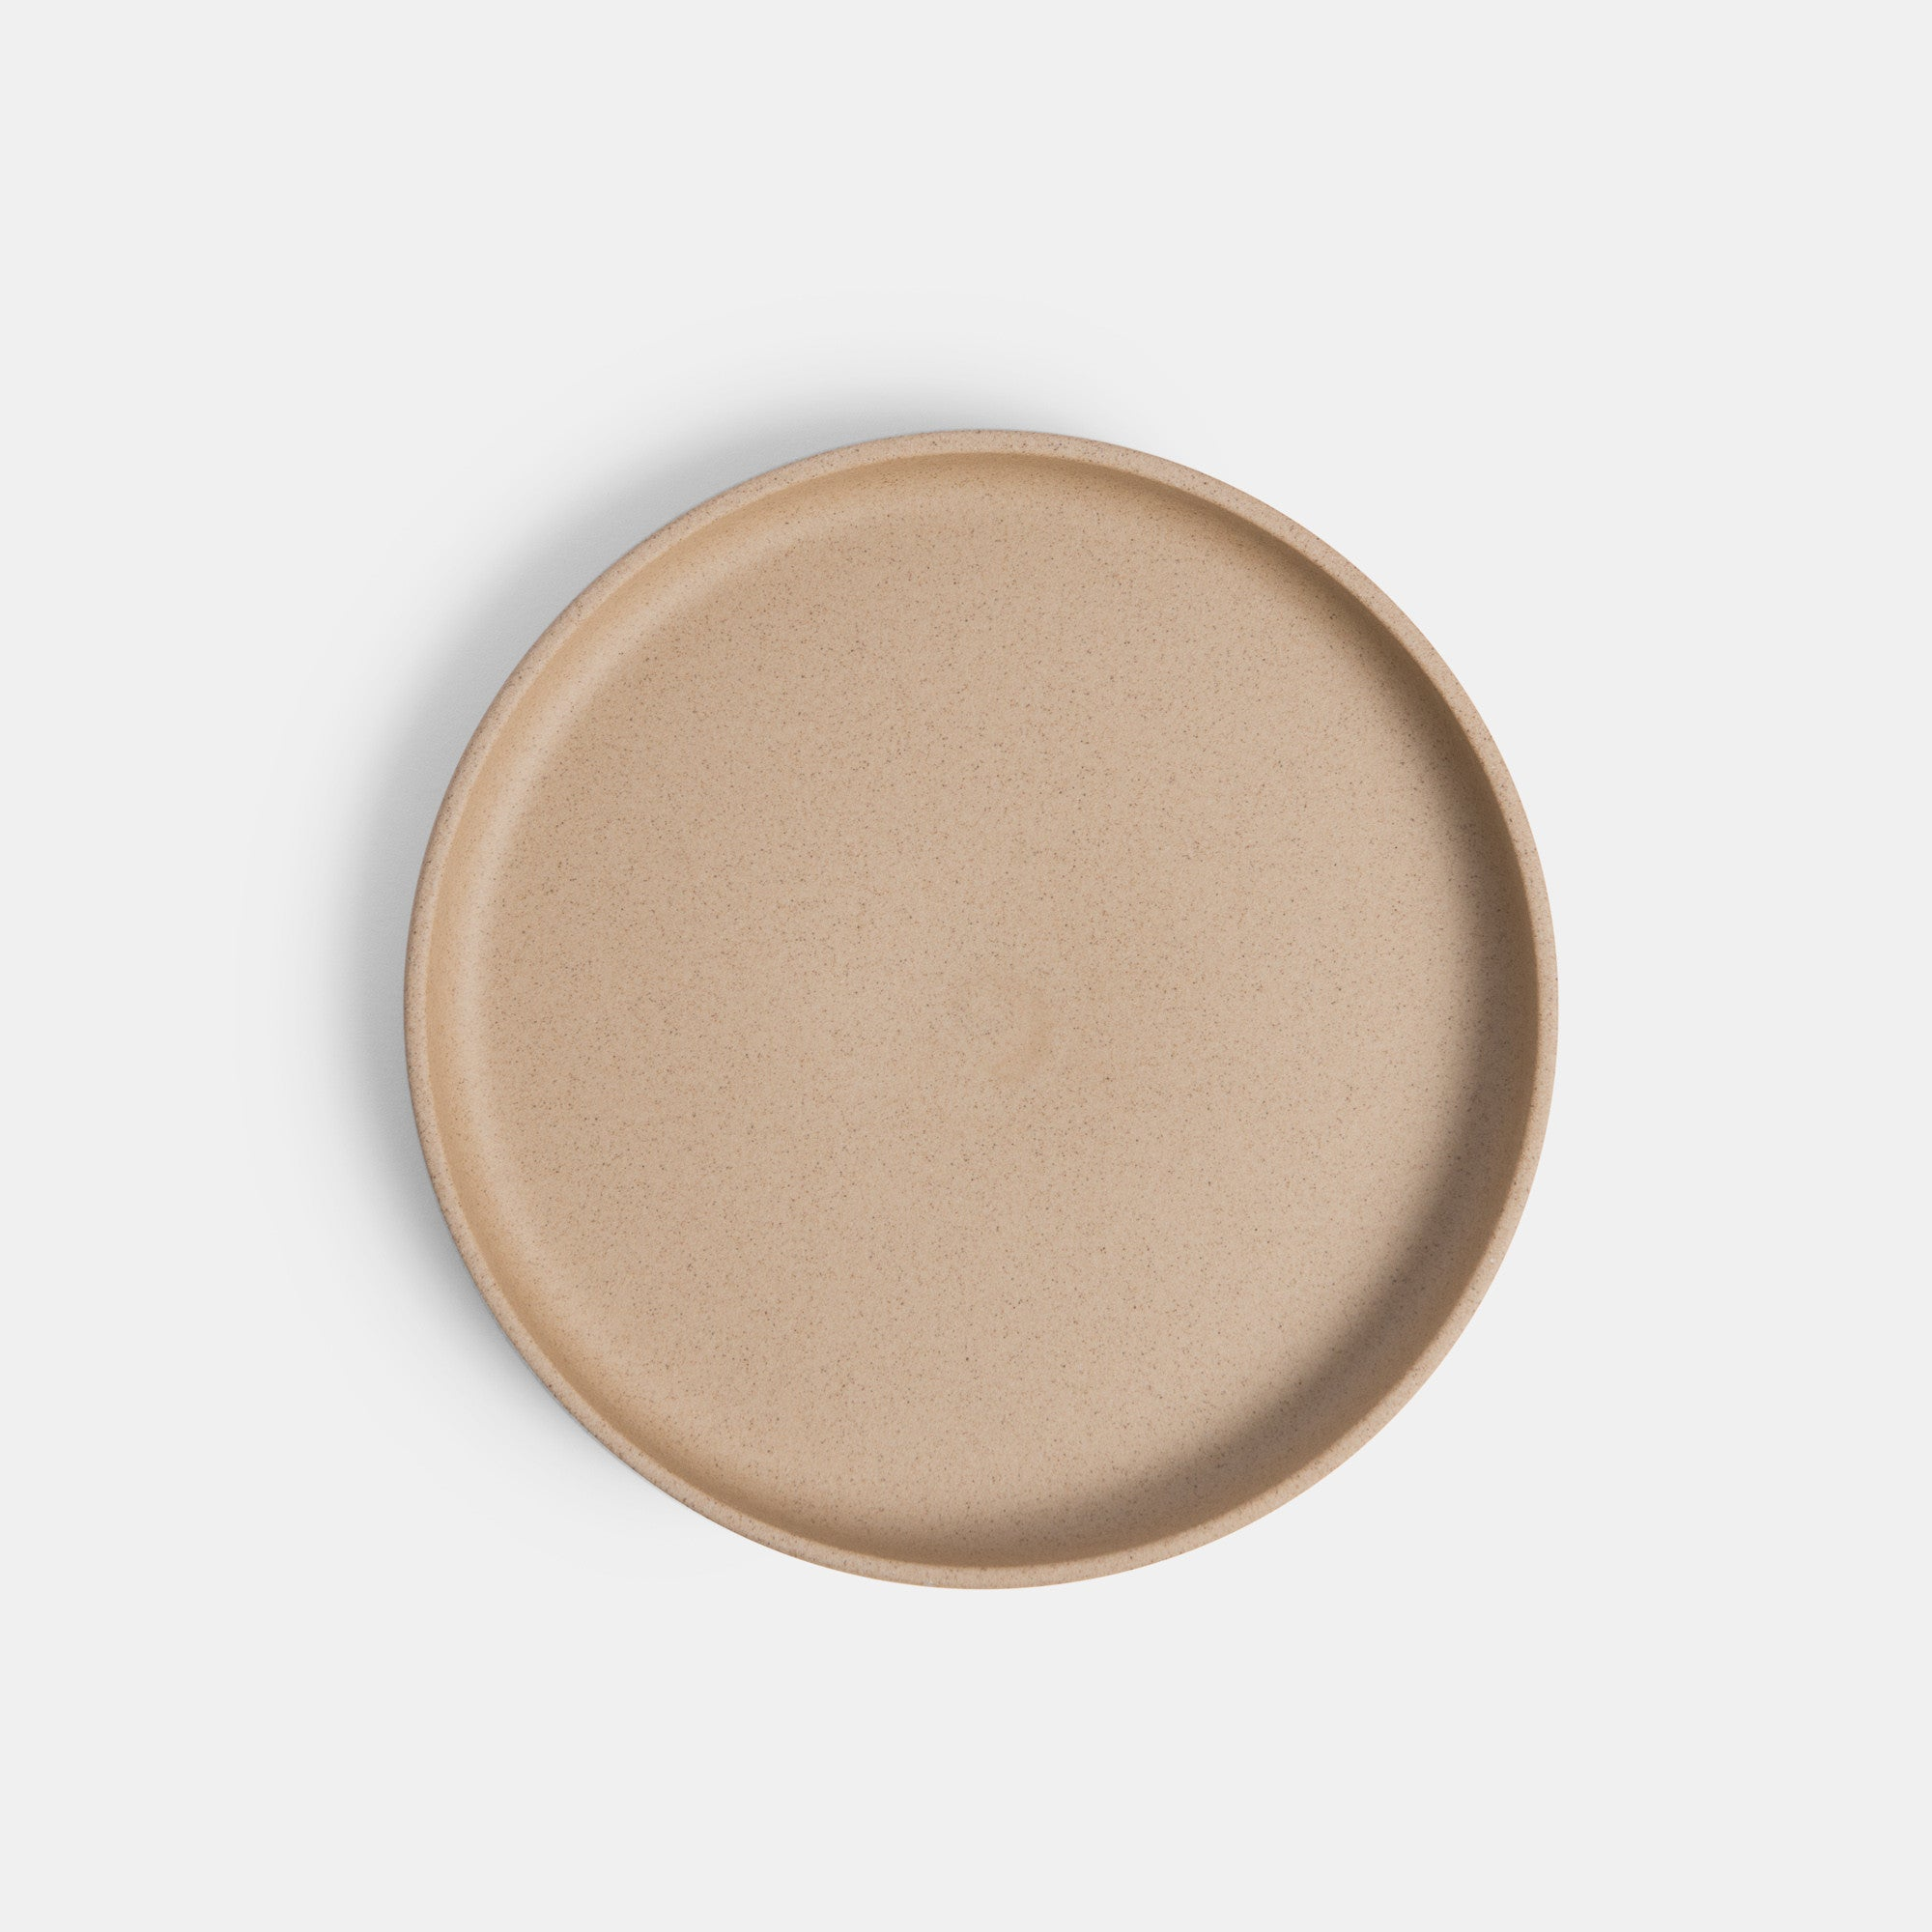 Hasami Porcelain Plate - Natural